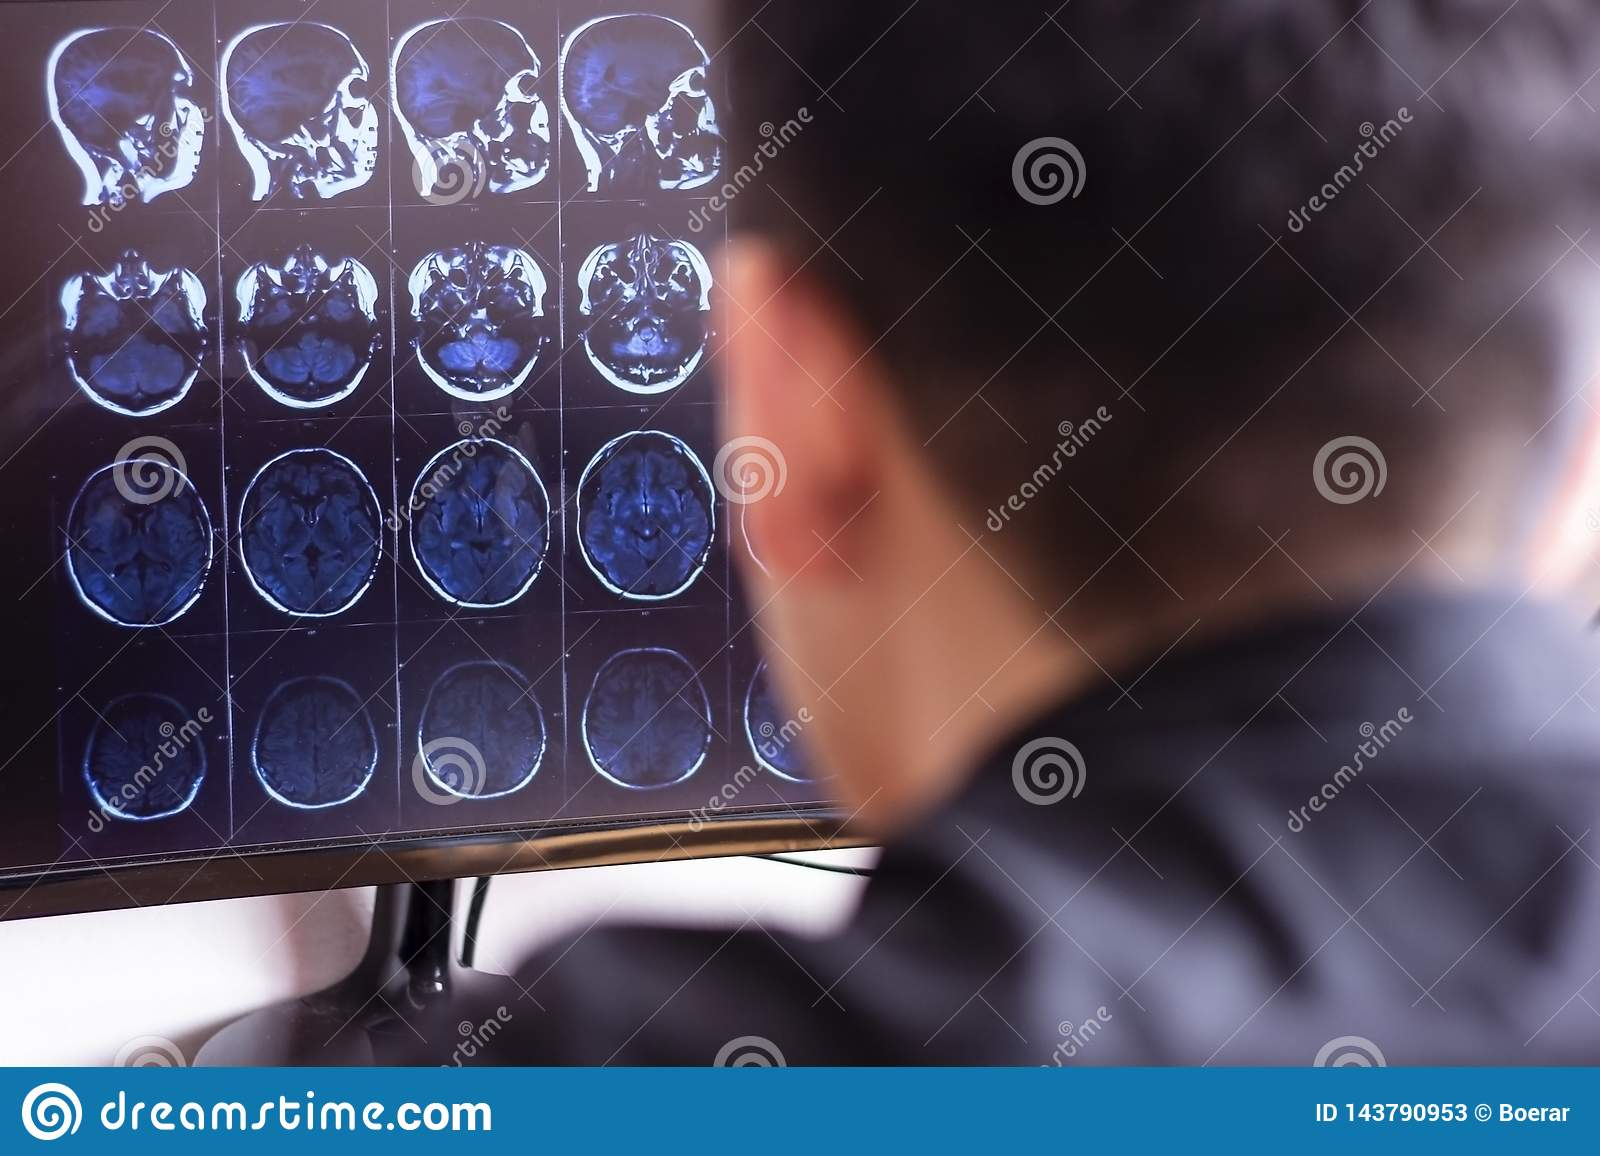 Doctor radiologist in hospital looking at mri x-ray scan of brain, head and skull ct scanning image on computer screen